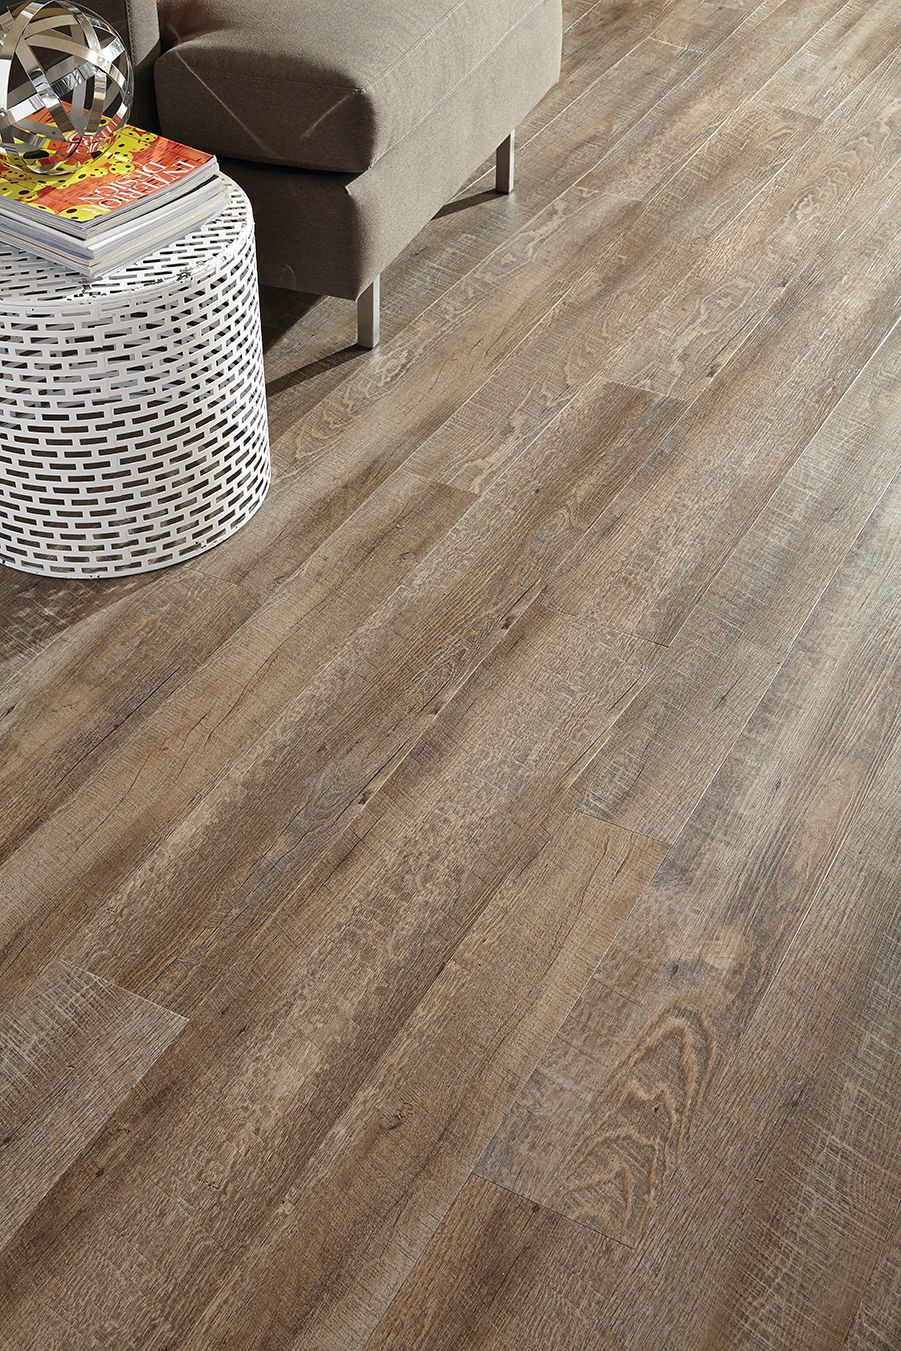 Stainmaster Driftwood Vinyl Floating Plank 6 X 36 4 0mm Thick